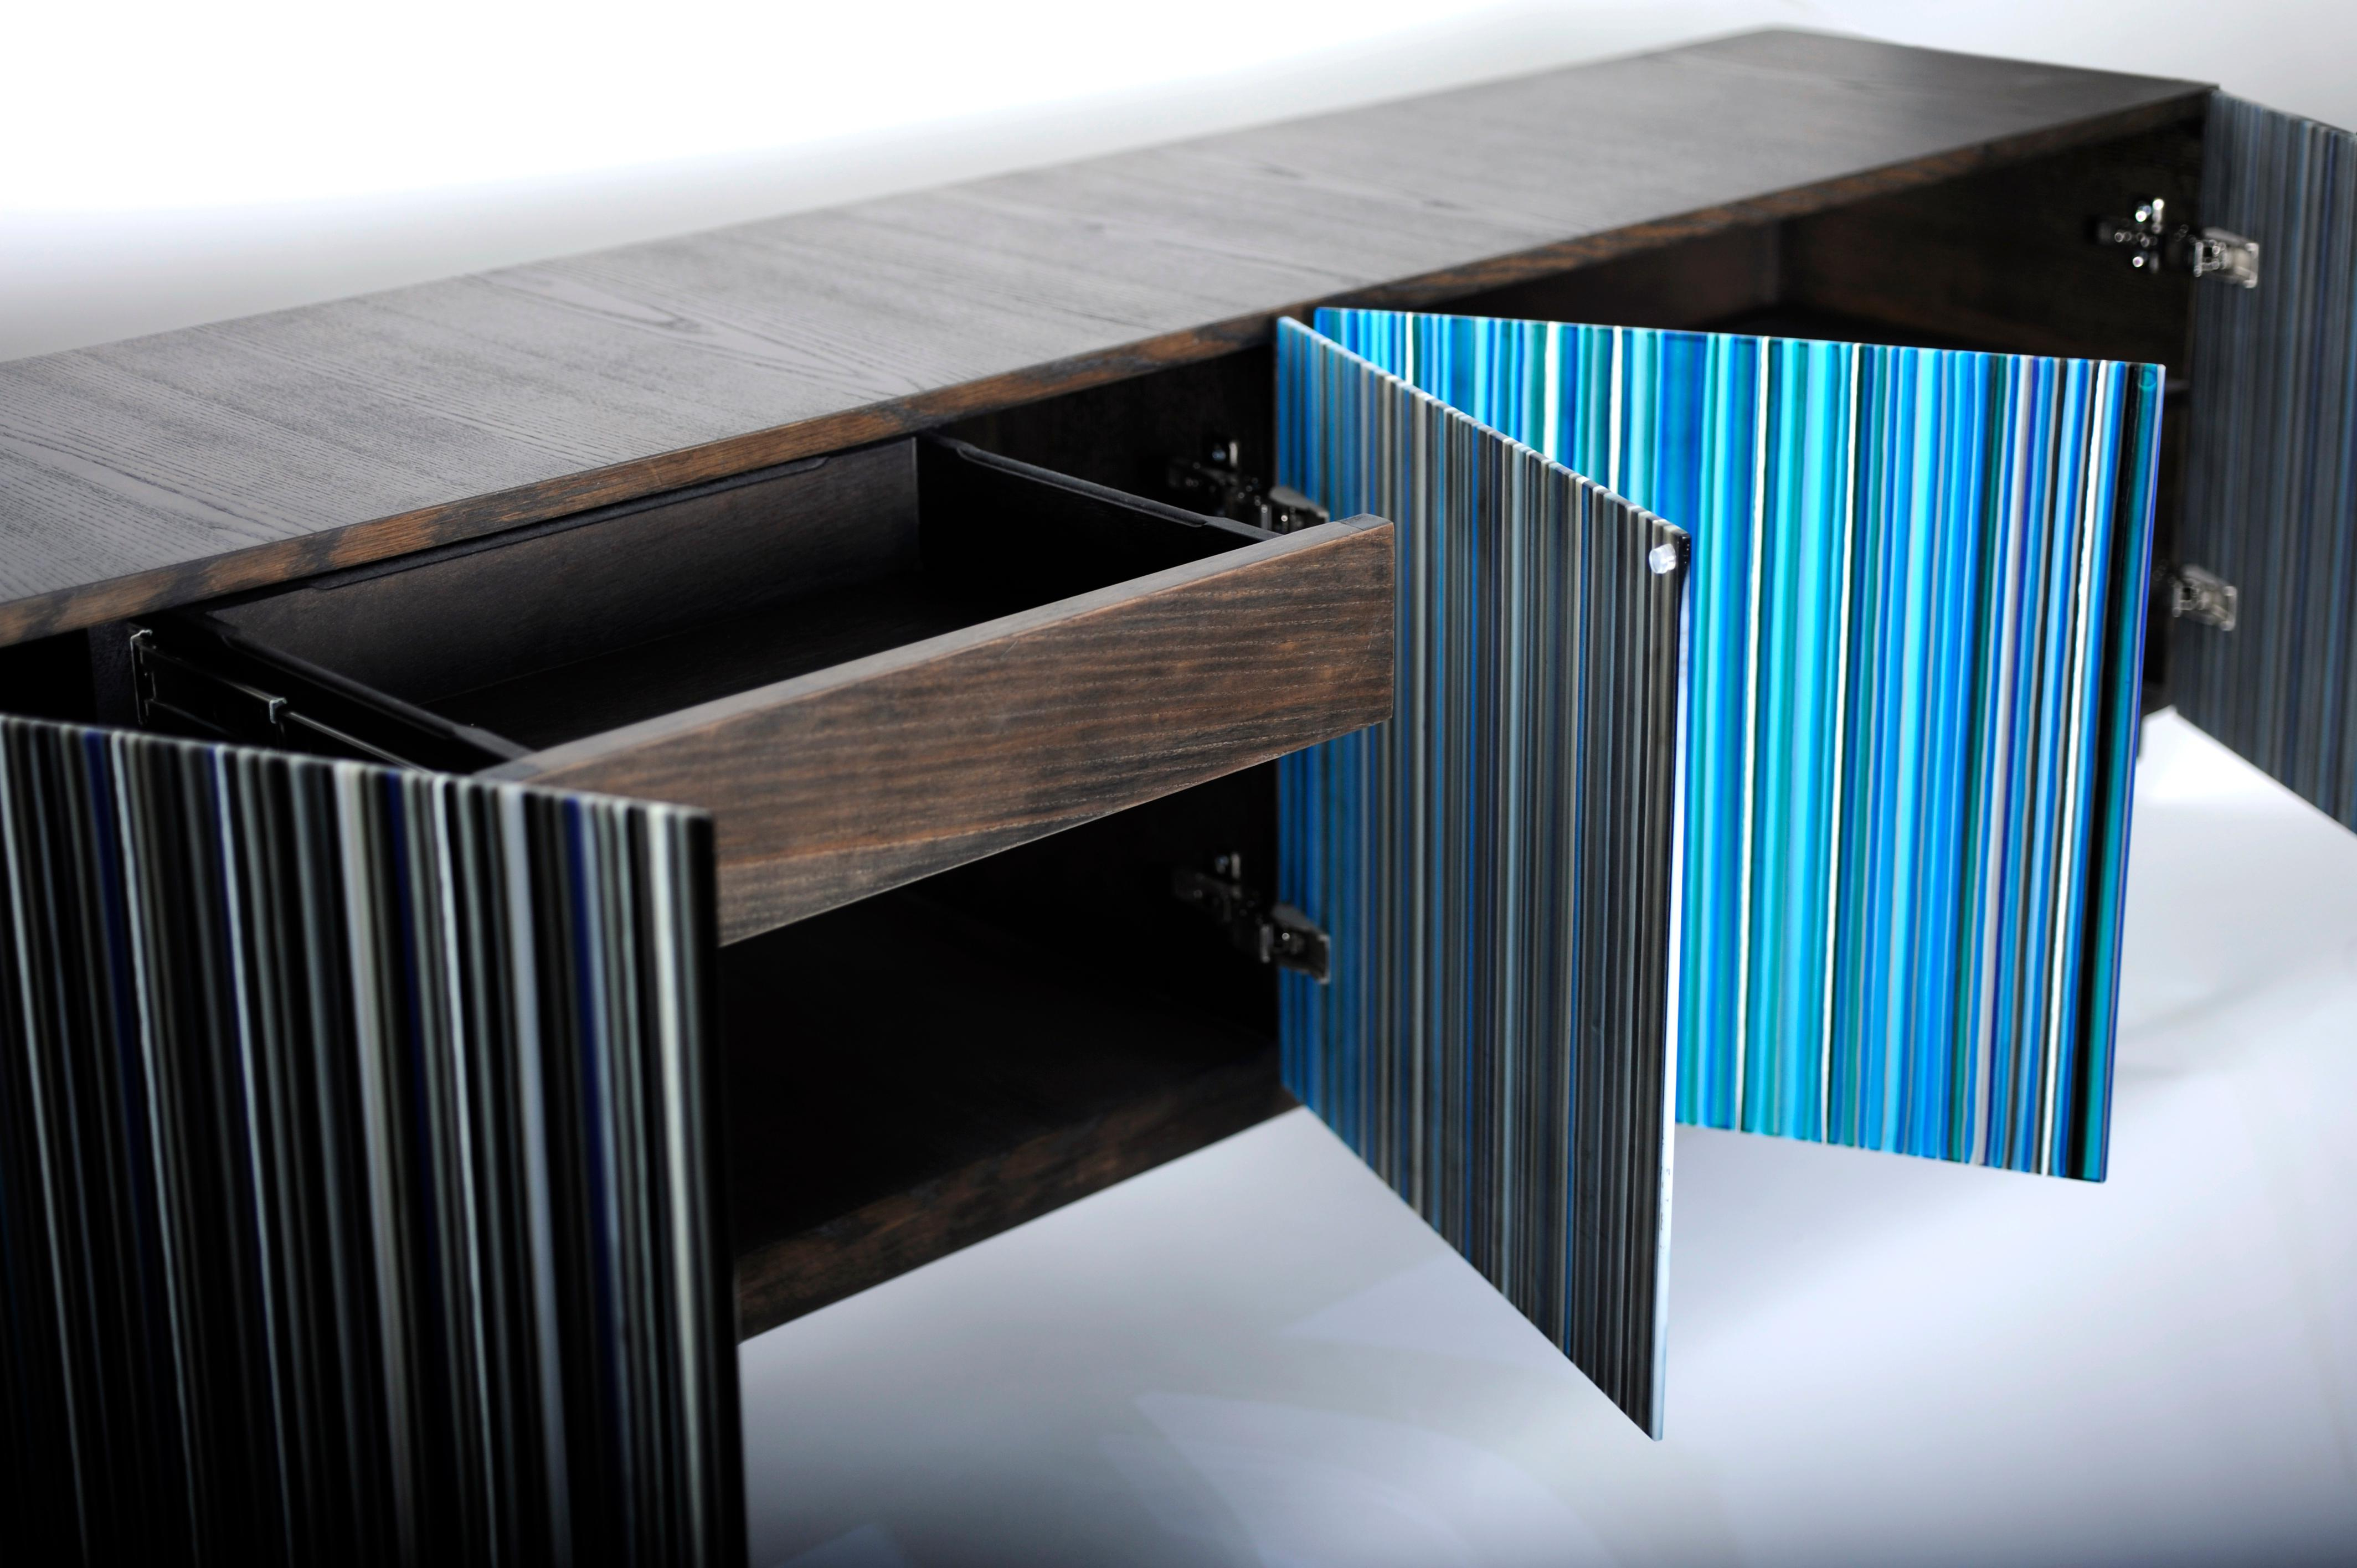 Retro Style Buffet Credenza, Barcode Design In Colored Glass, Shades Of Blue Intended For Blue Stained Glass Credenzas (View 15 of 20)